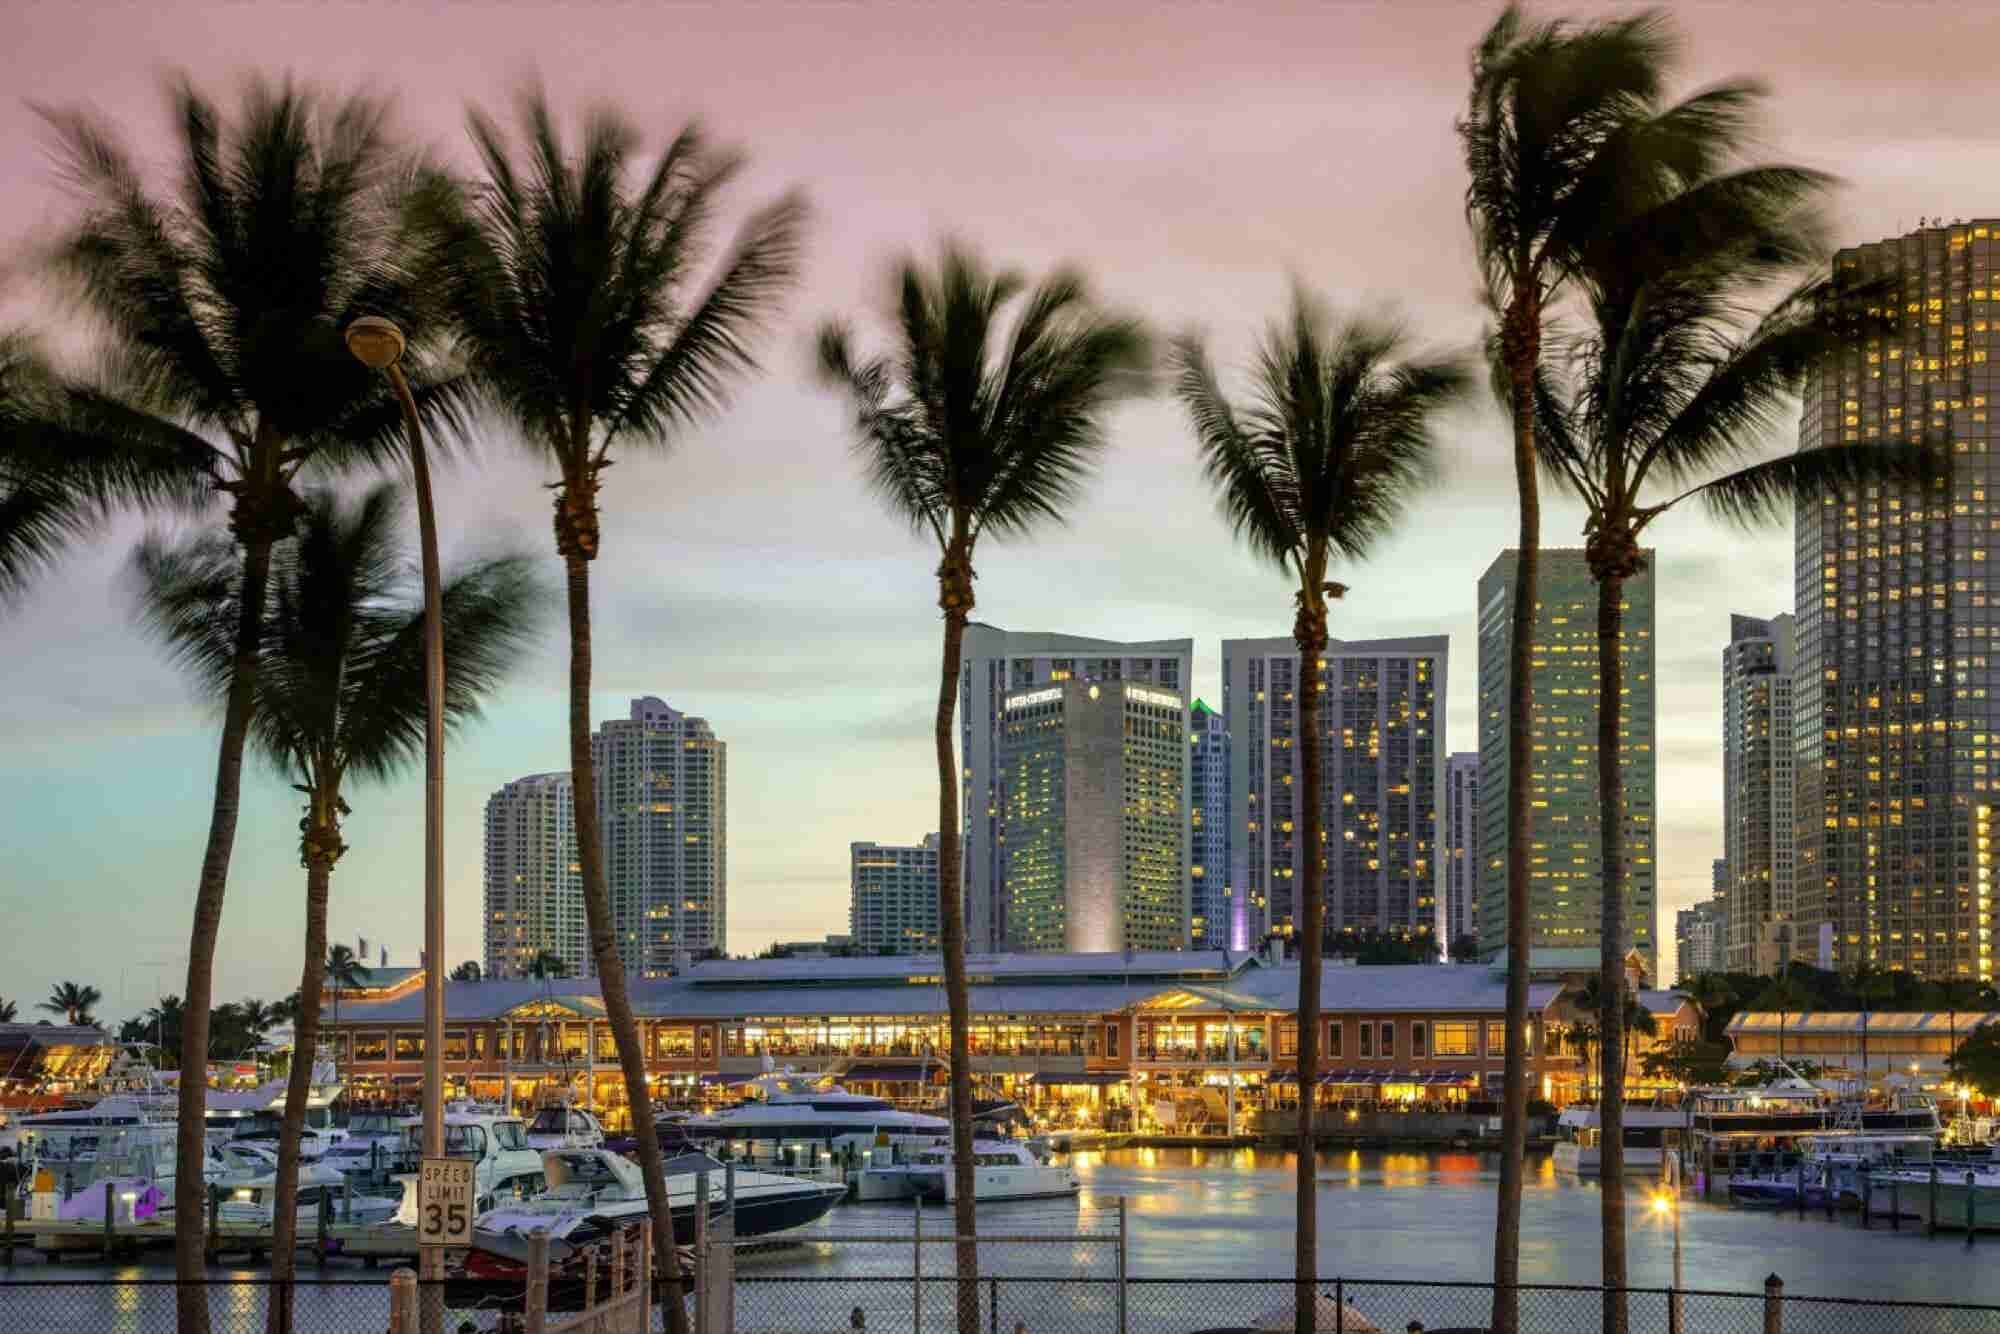 The 10 Best Cities for Retirement